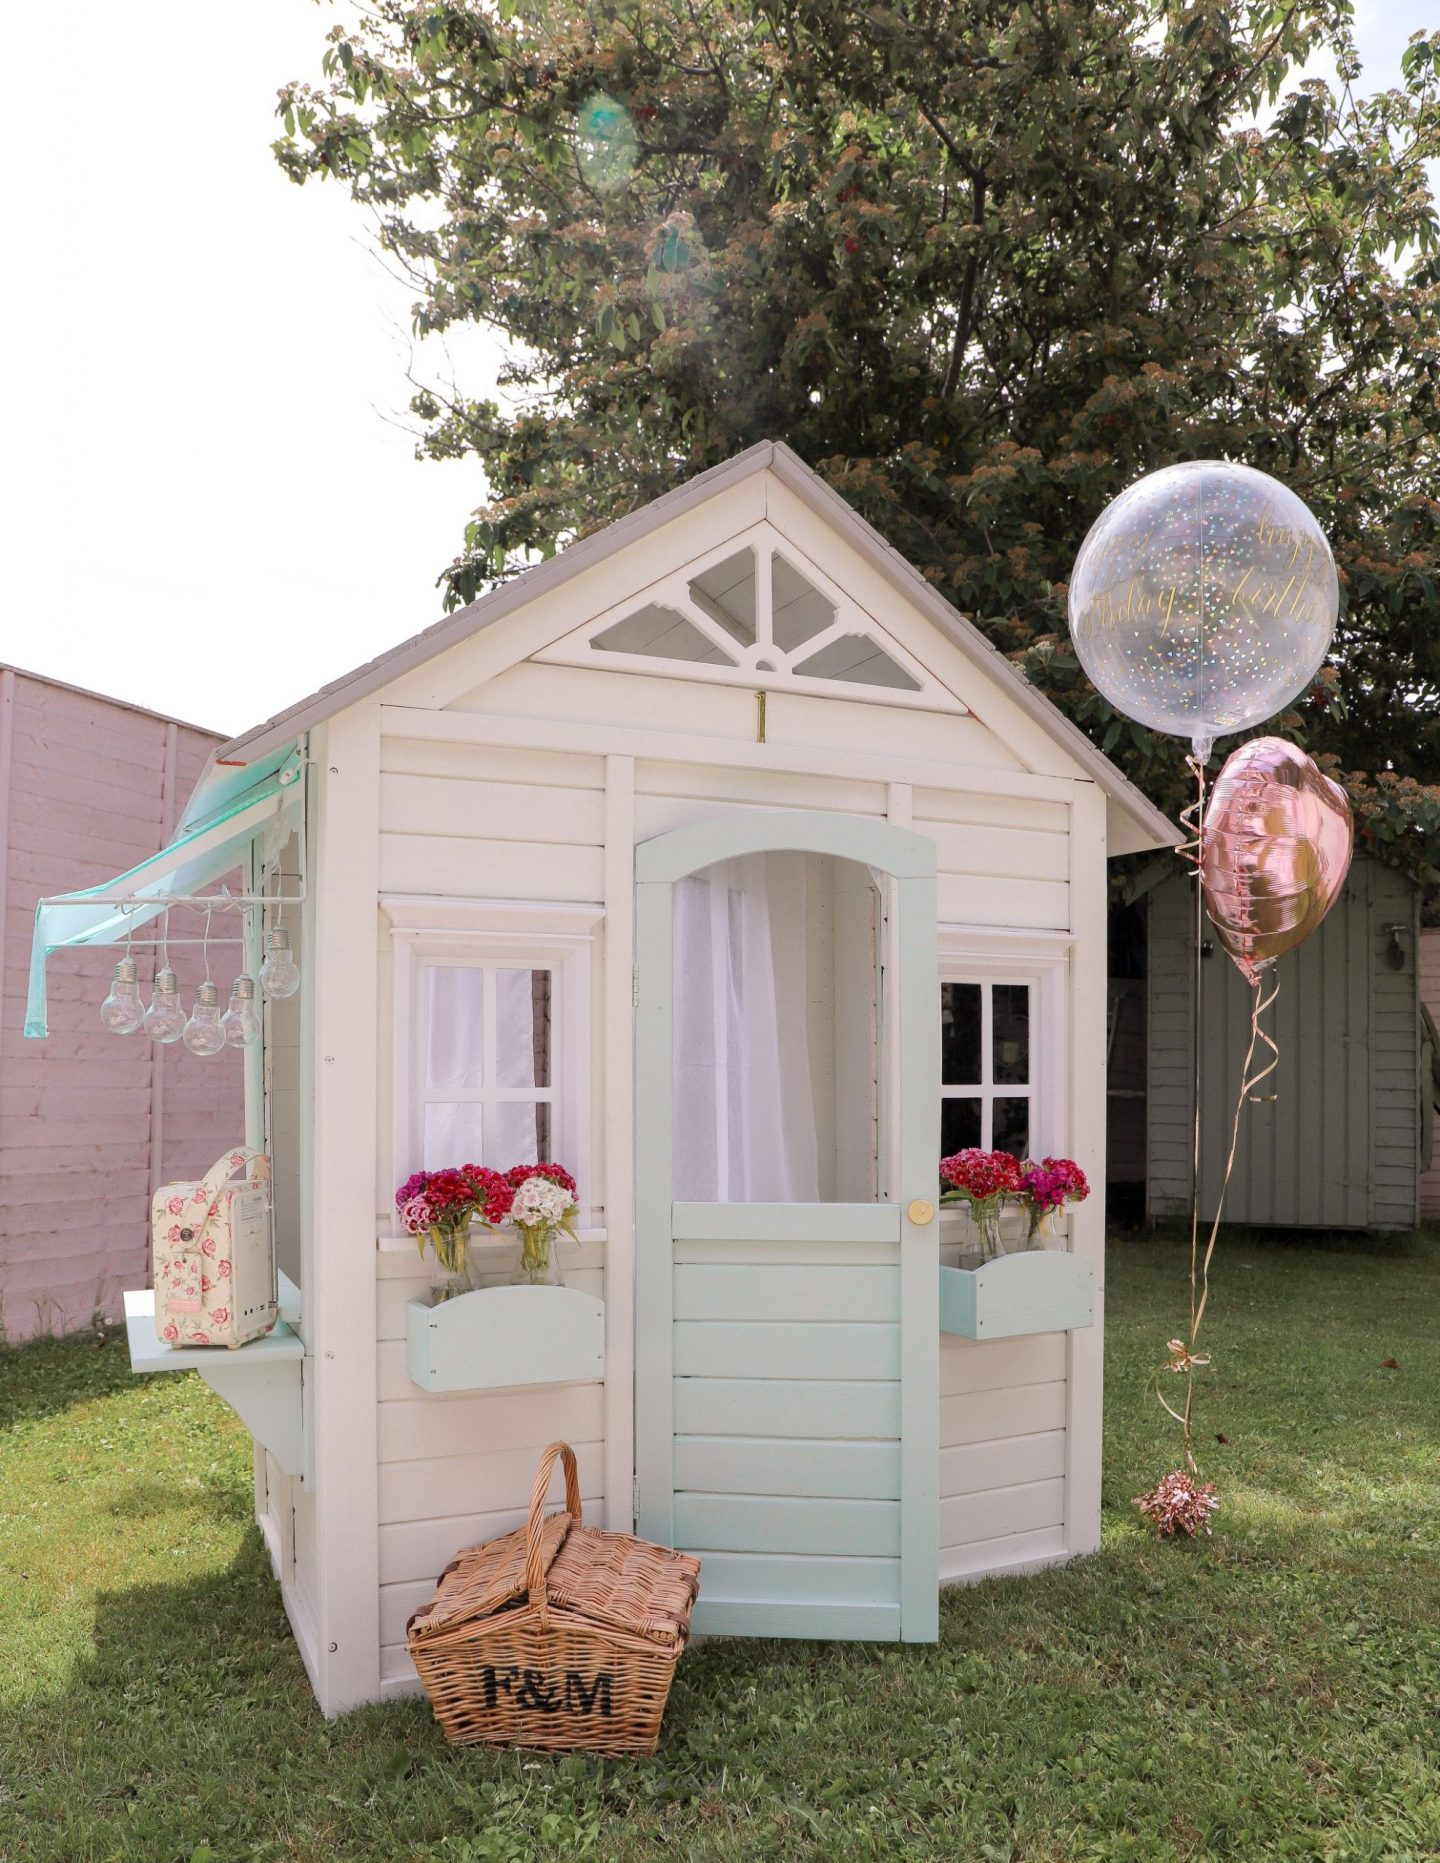 Cubby playhouse makeover